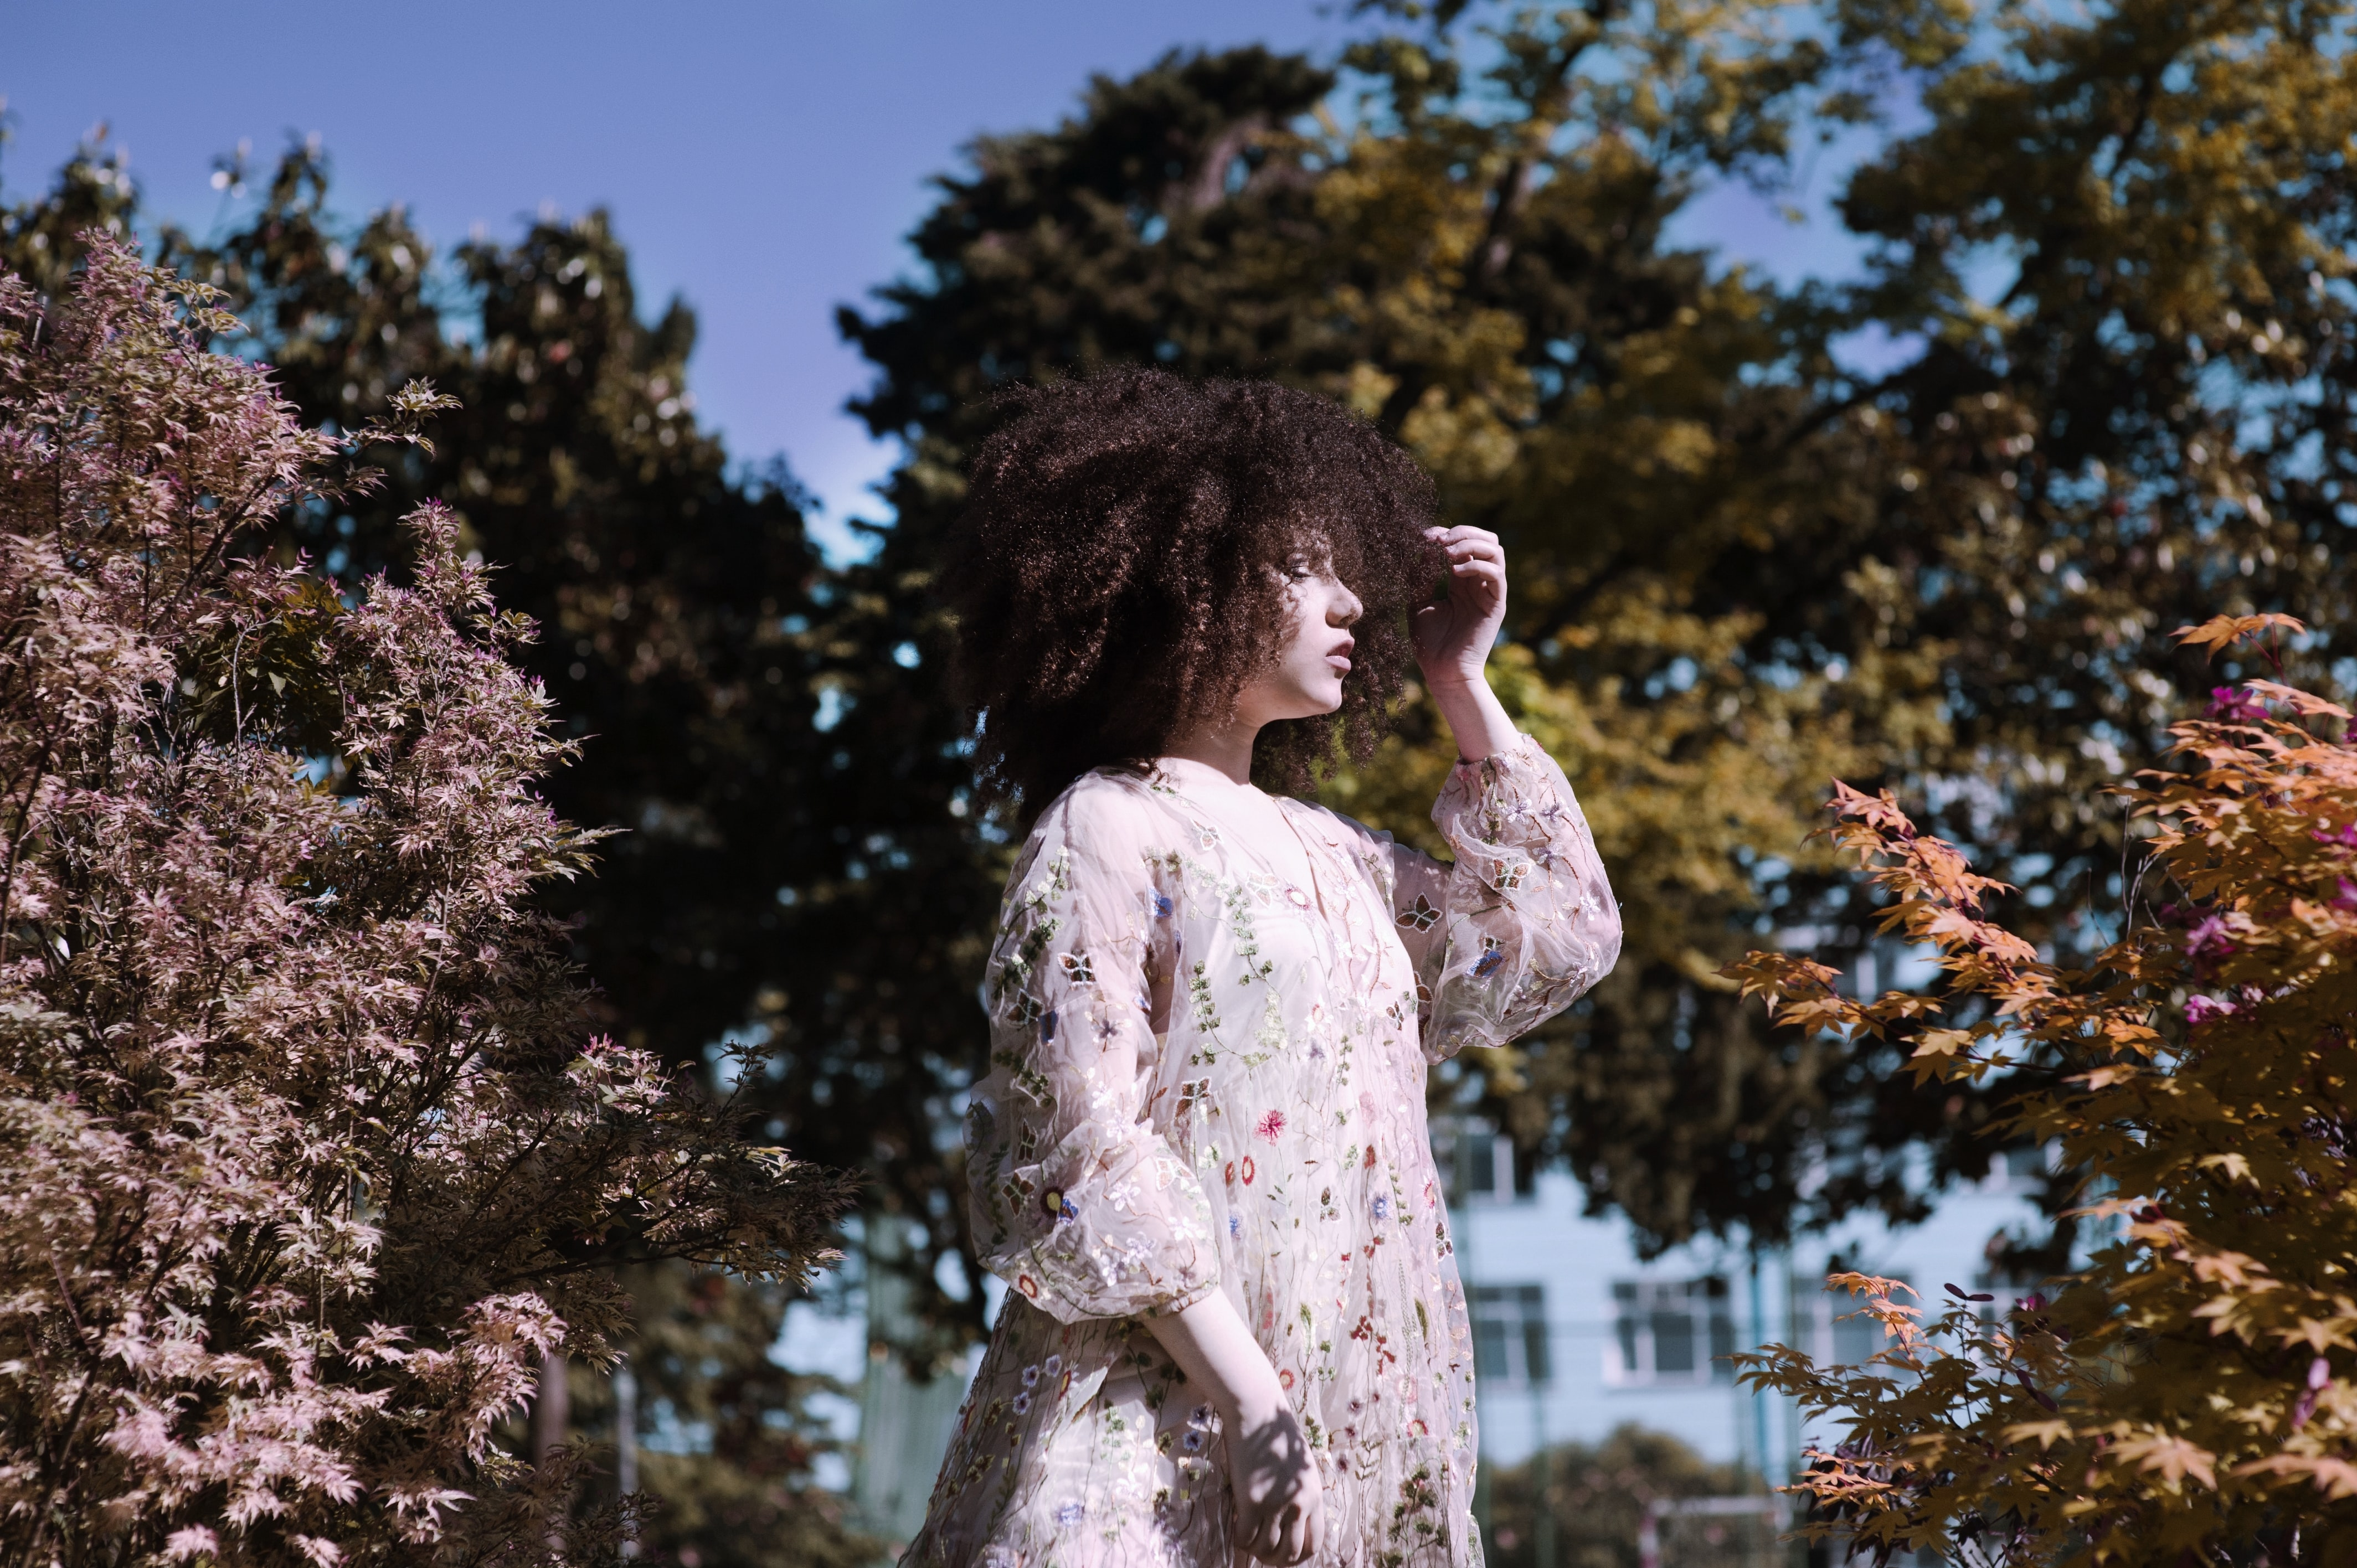 A woman in a pink dress touches her curly hair among trees in Batumi